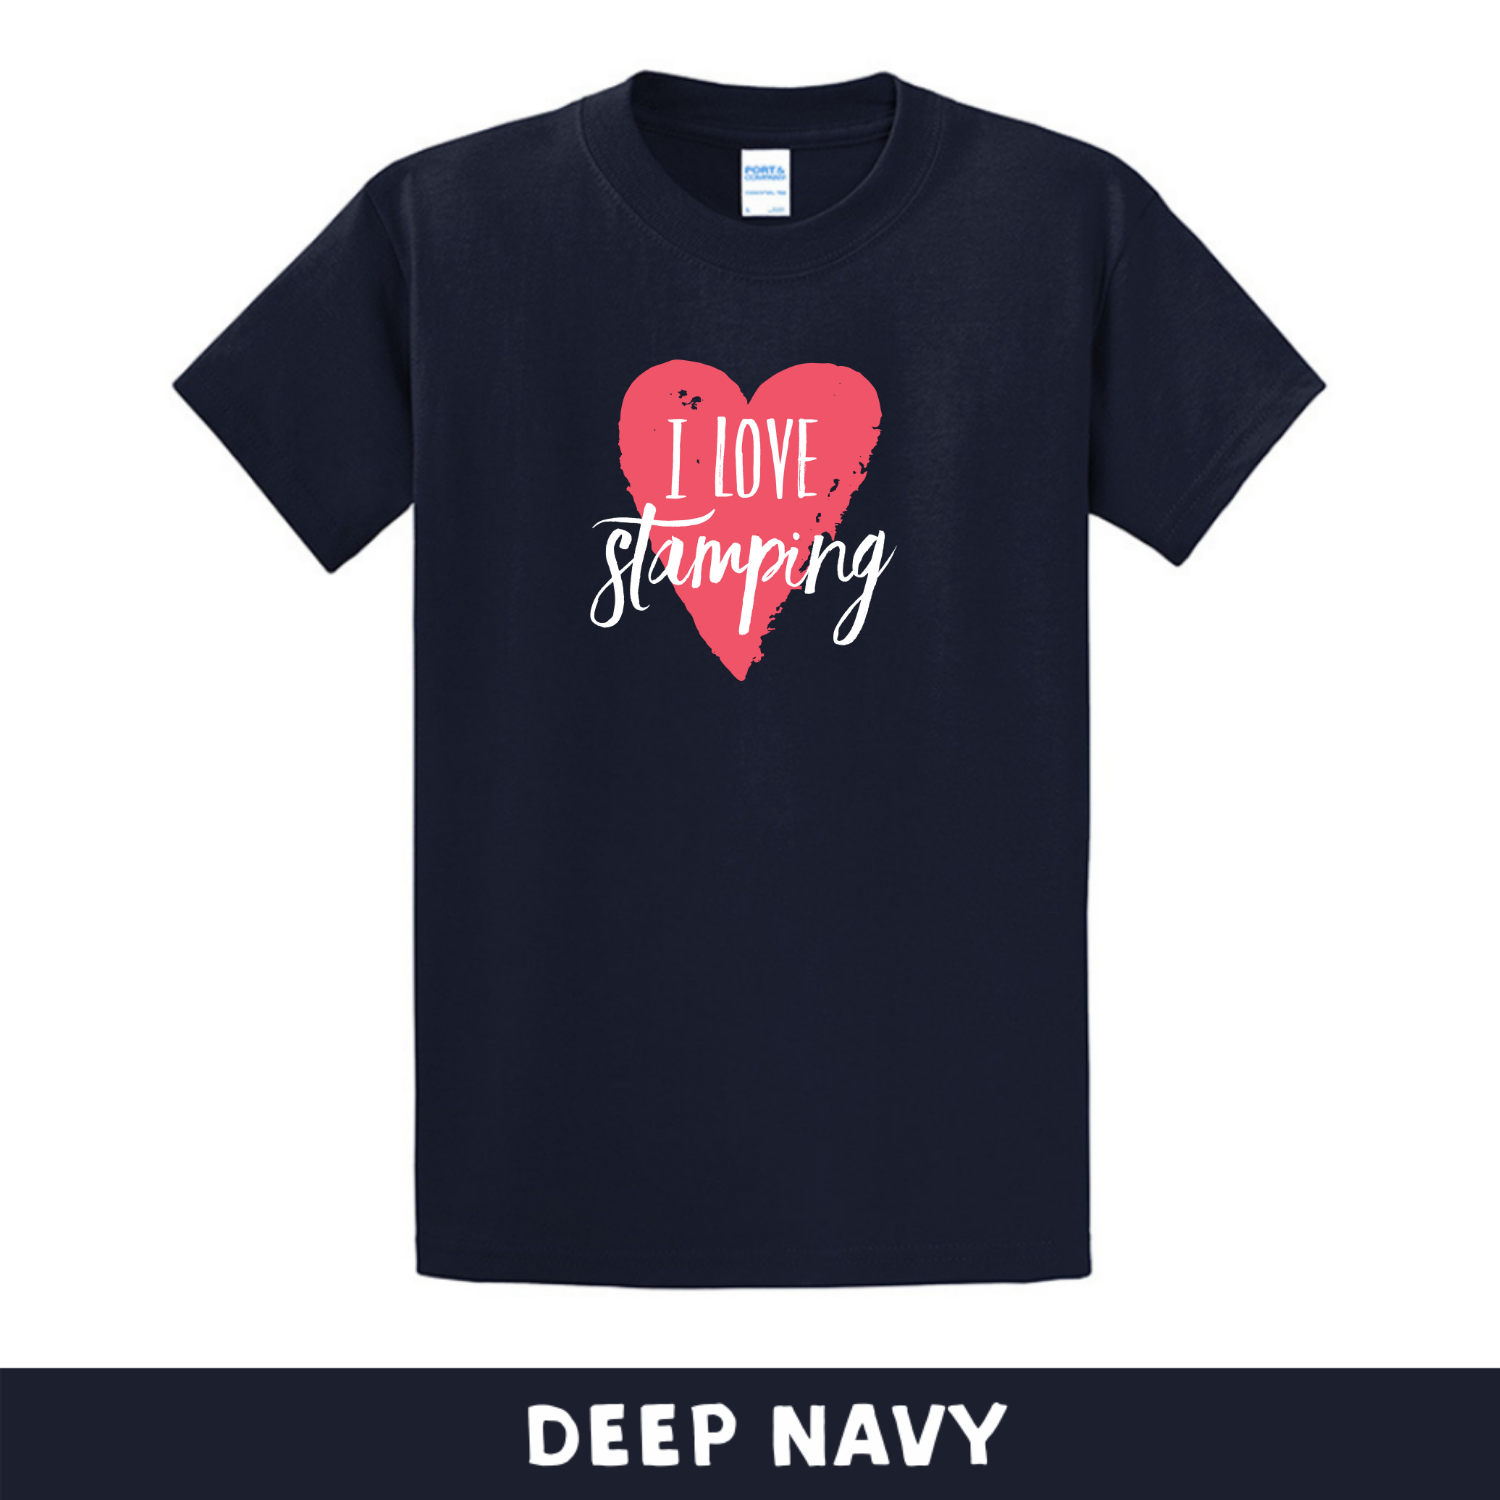 Deep Navy - Crew Neck Unisex T-Shirt - I Love Stamping